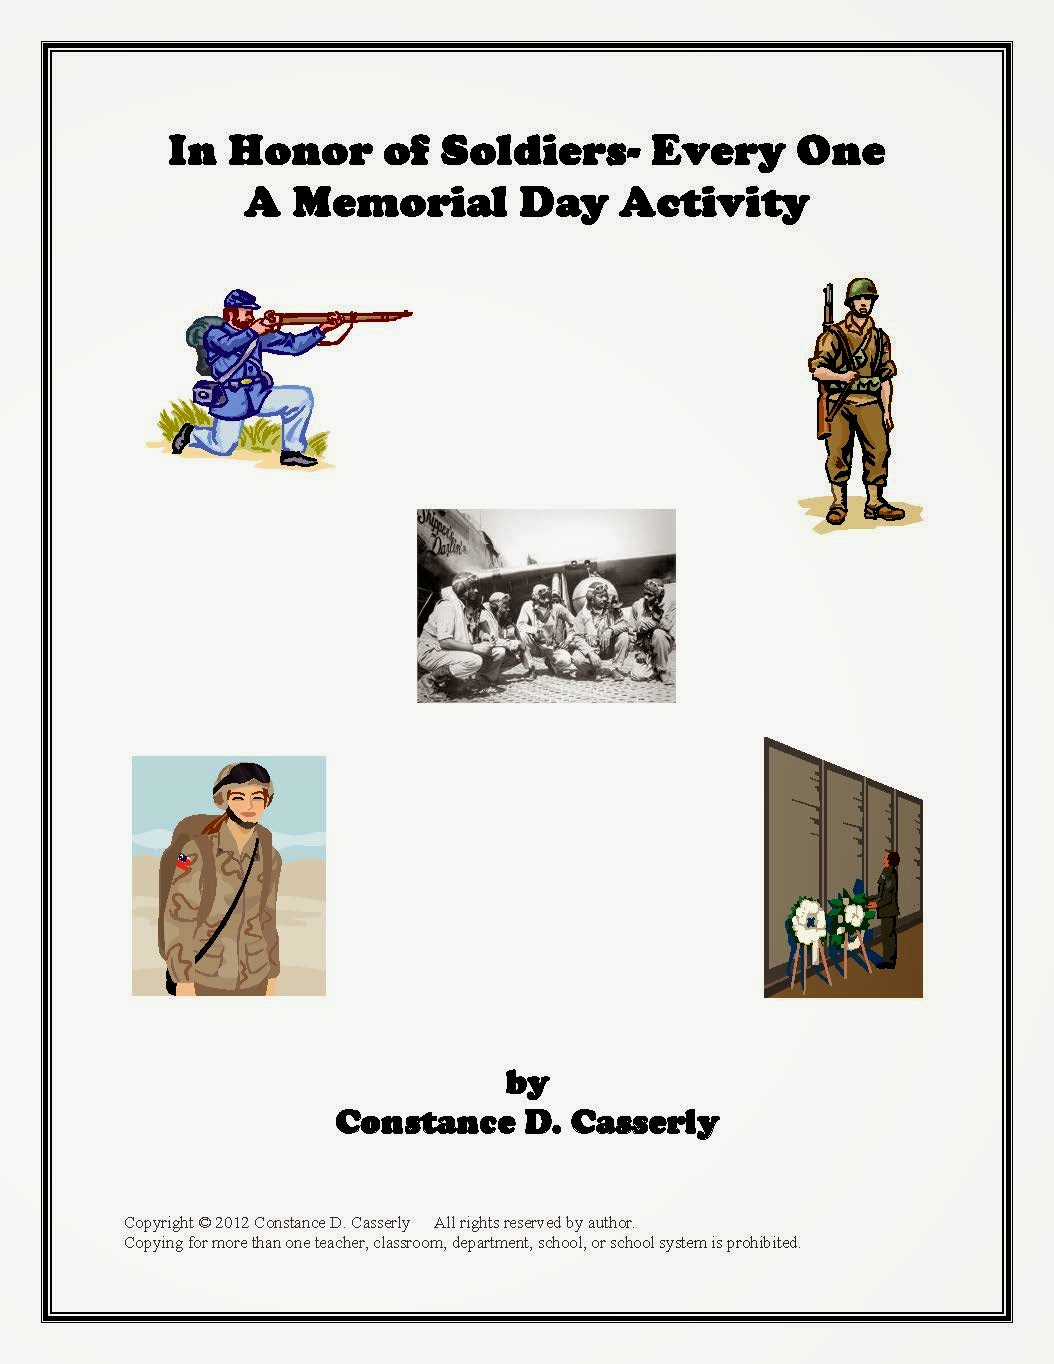 In Honor of Soldiers-Every One: A Veteran's or Memorial Day Project